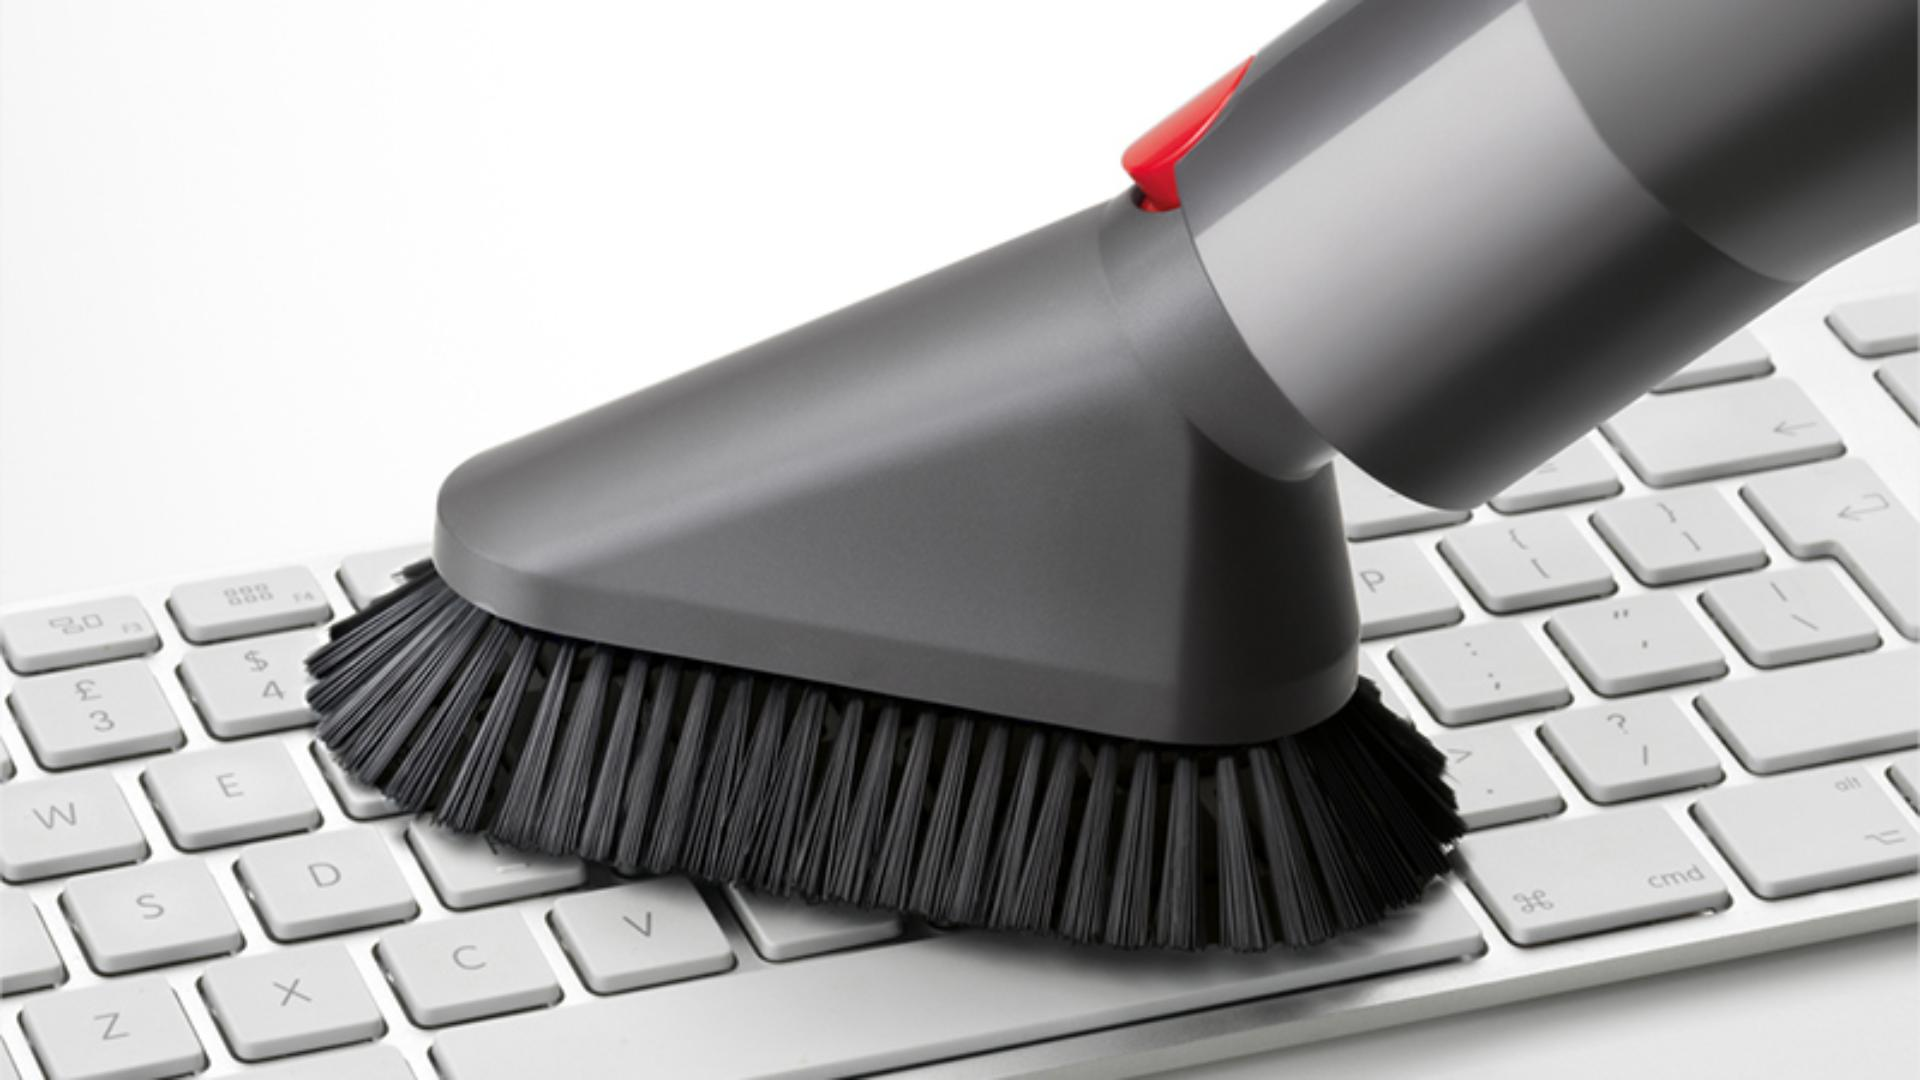 Using Dyson soft dusting brush